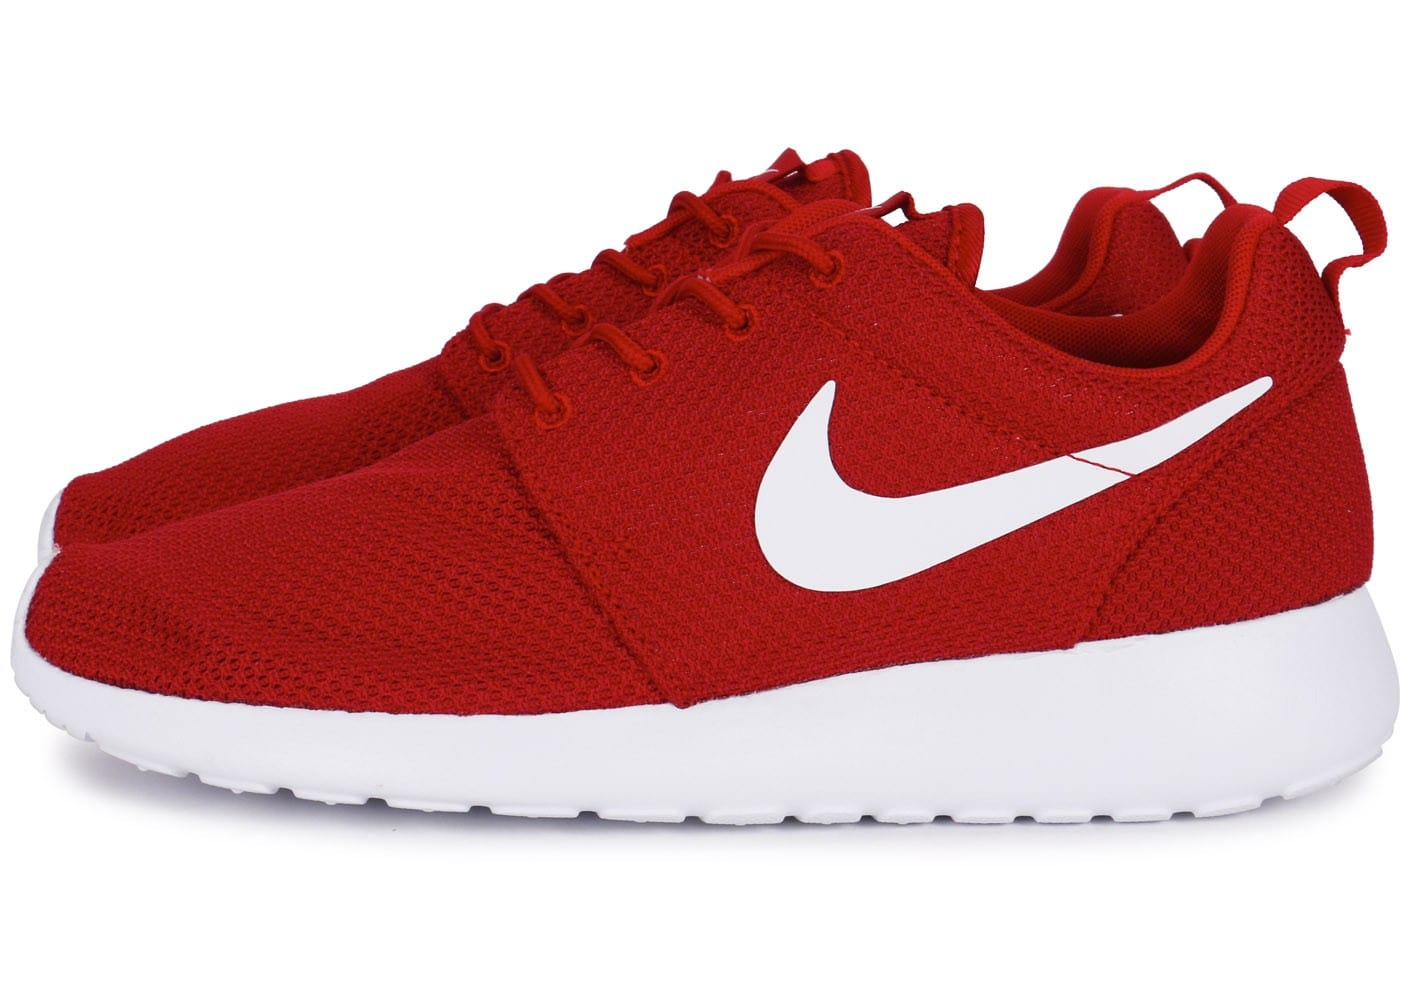 One Et Chausport Chaussures Nike Homme Baskets Roshe Blanc Rouge 5qFtf